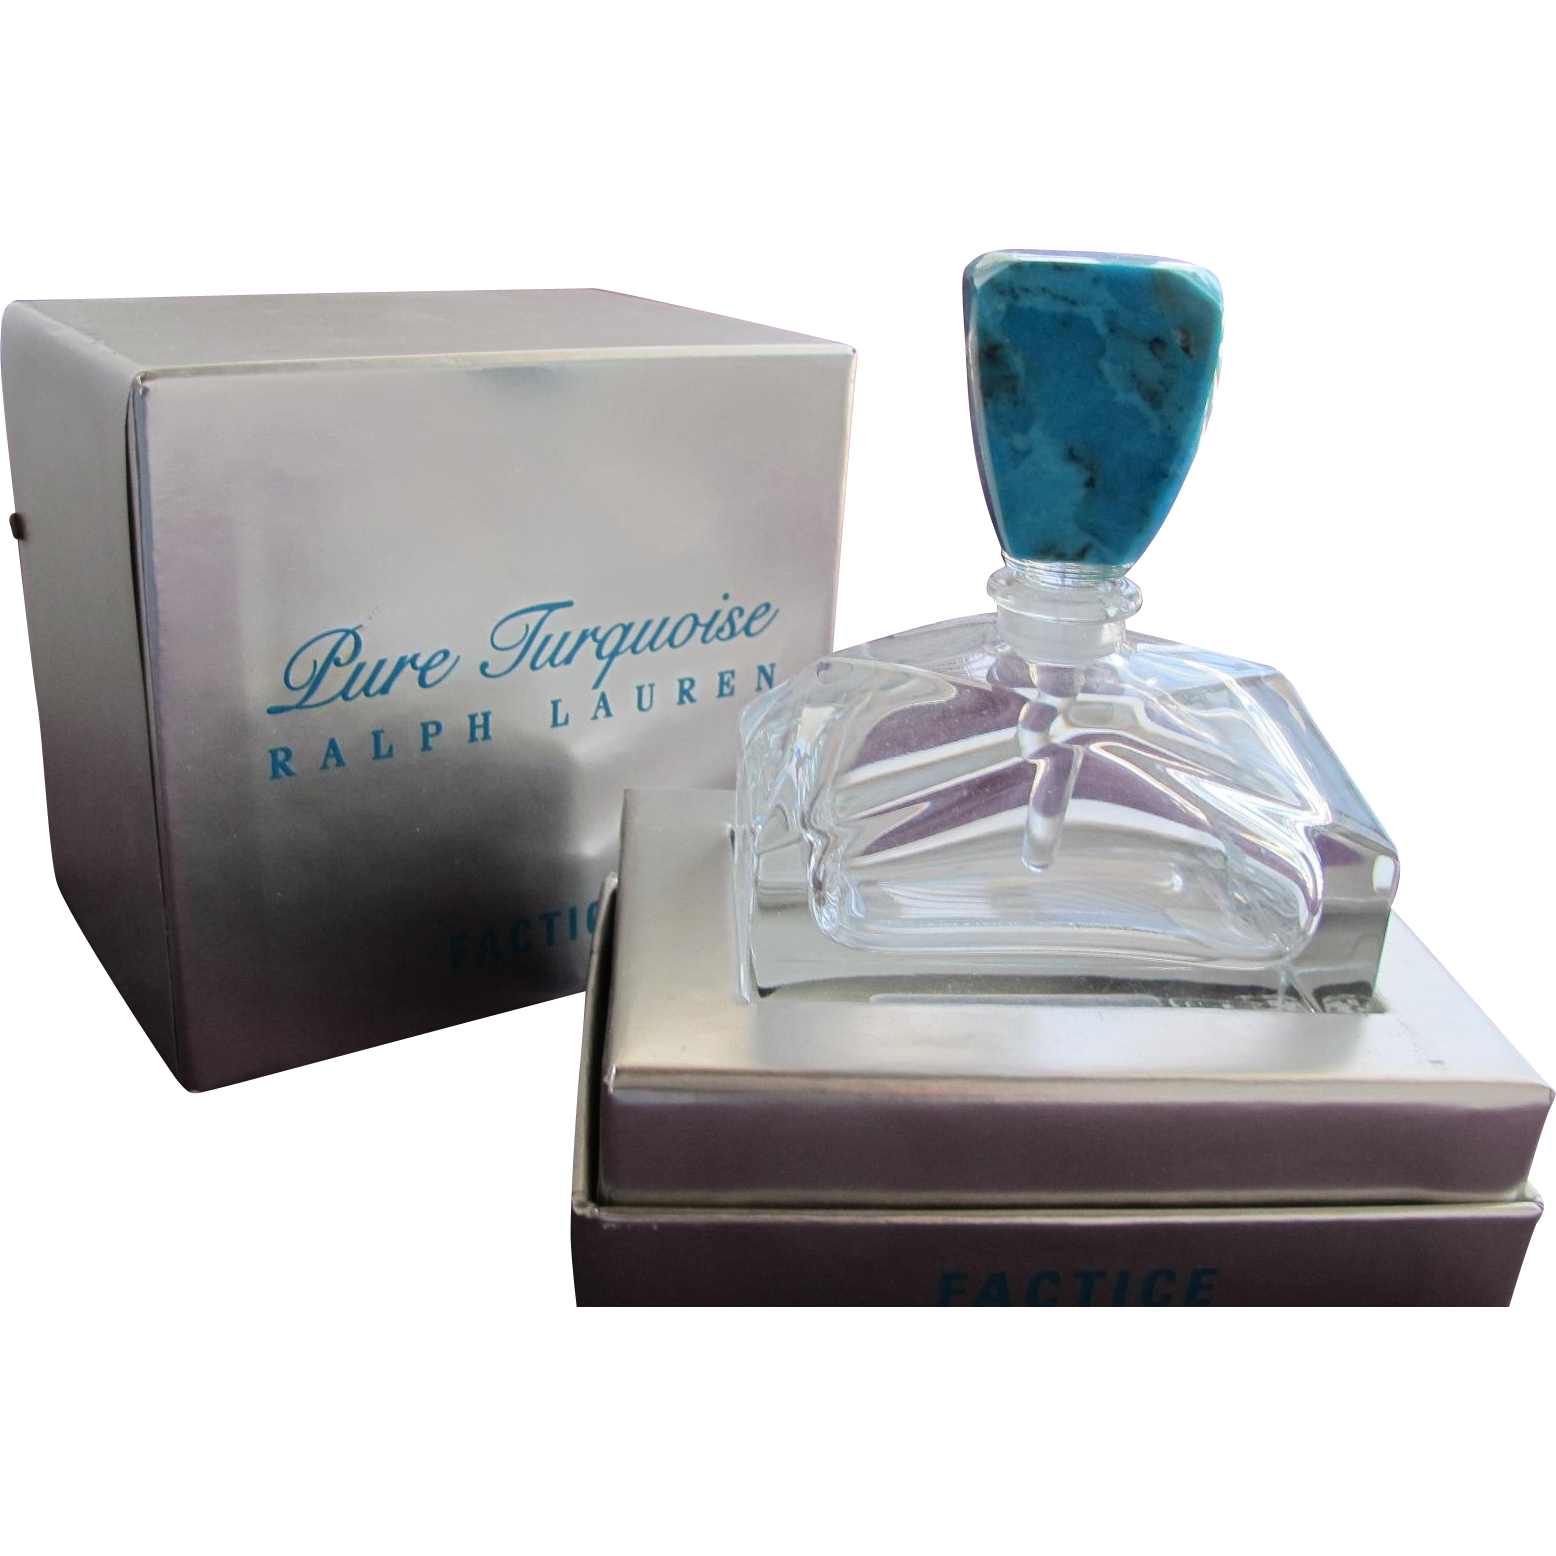 Perfume Bottle by Ralph Lauren Factice with Turquoise Stone Stopper